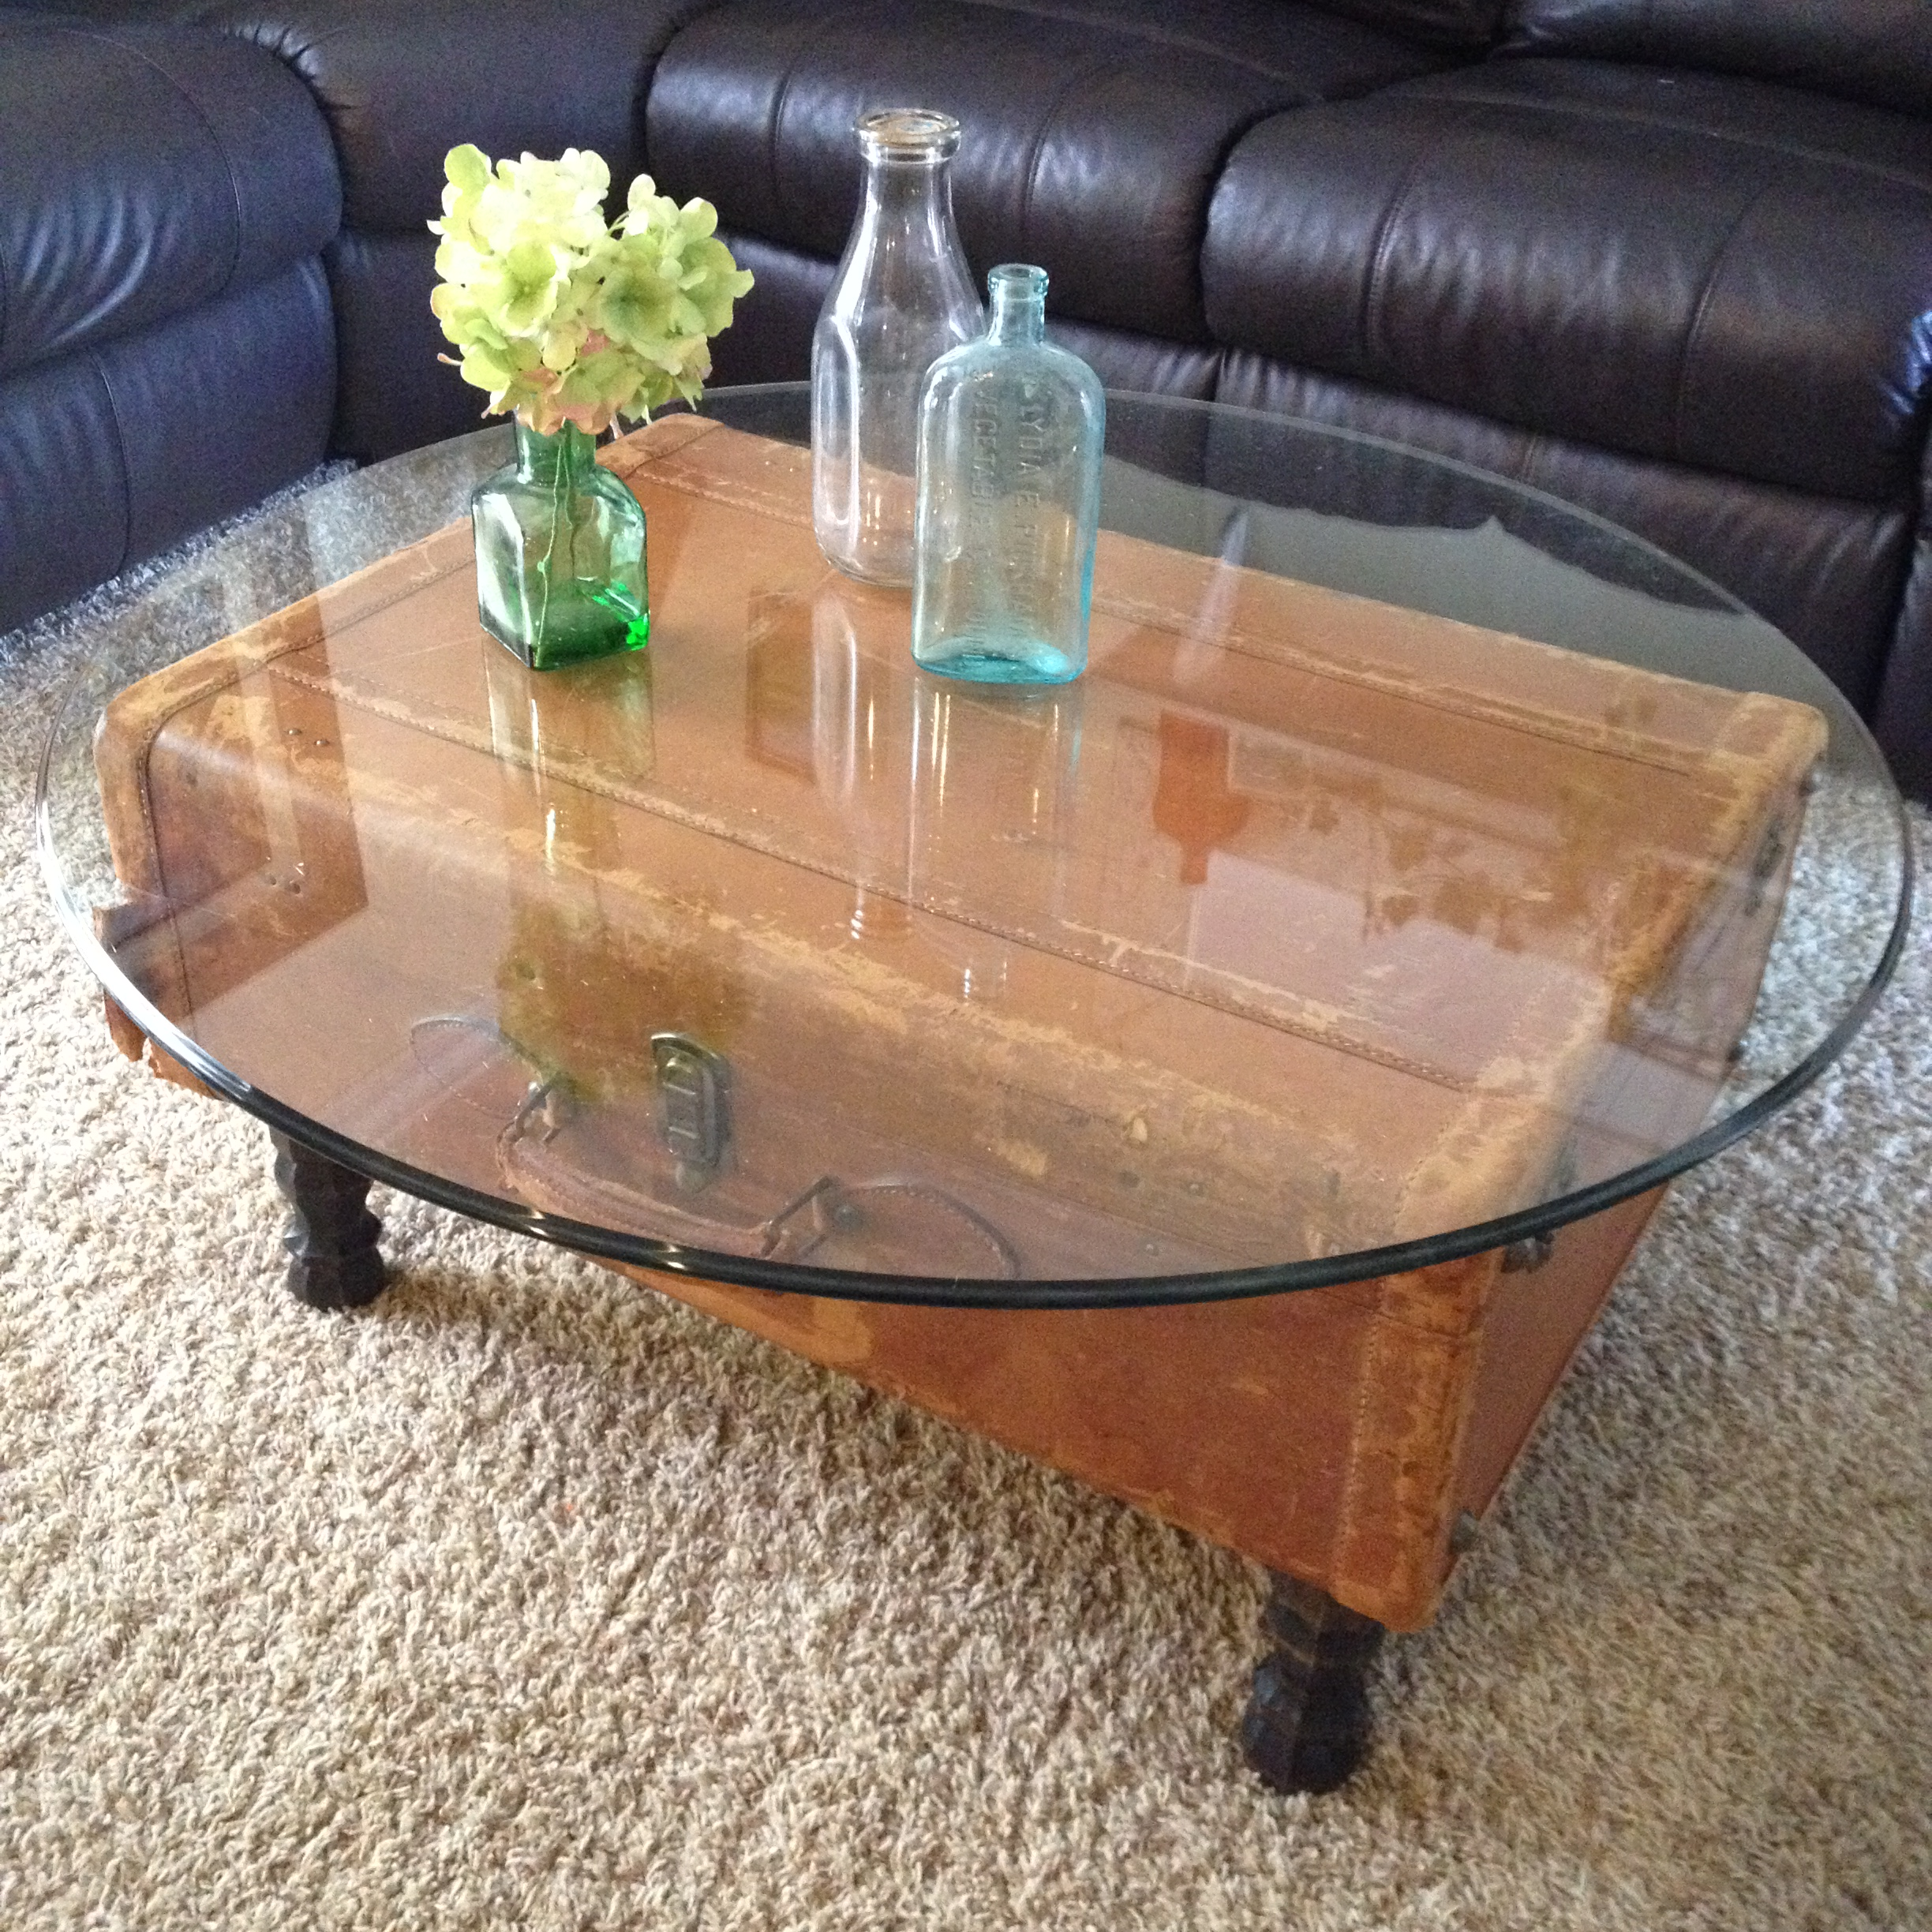 vintage leather suitcase coffee table | goodwill of orange county blog